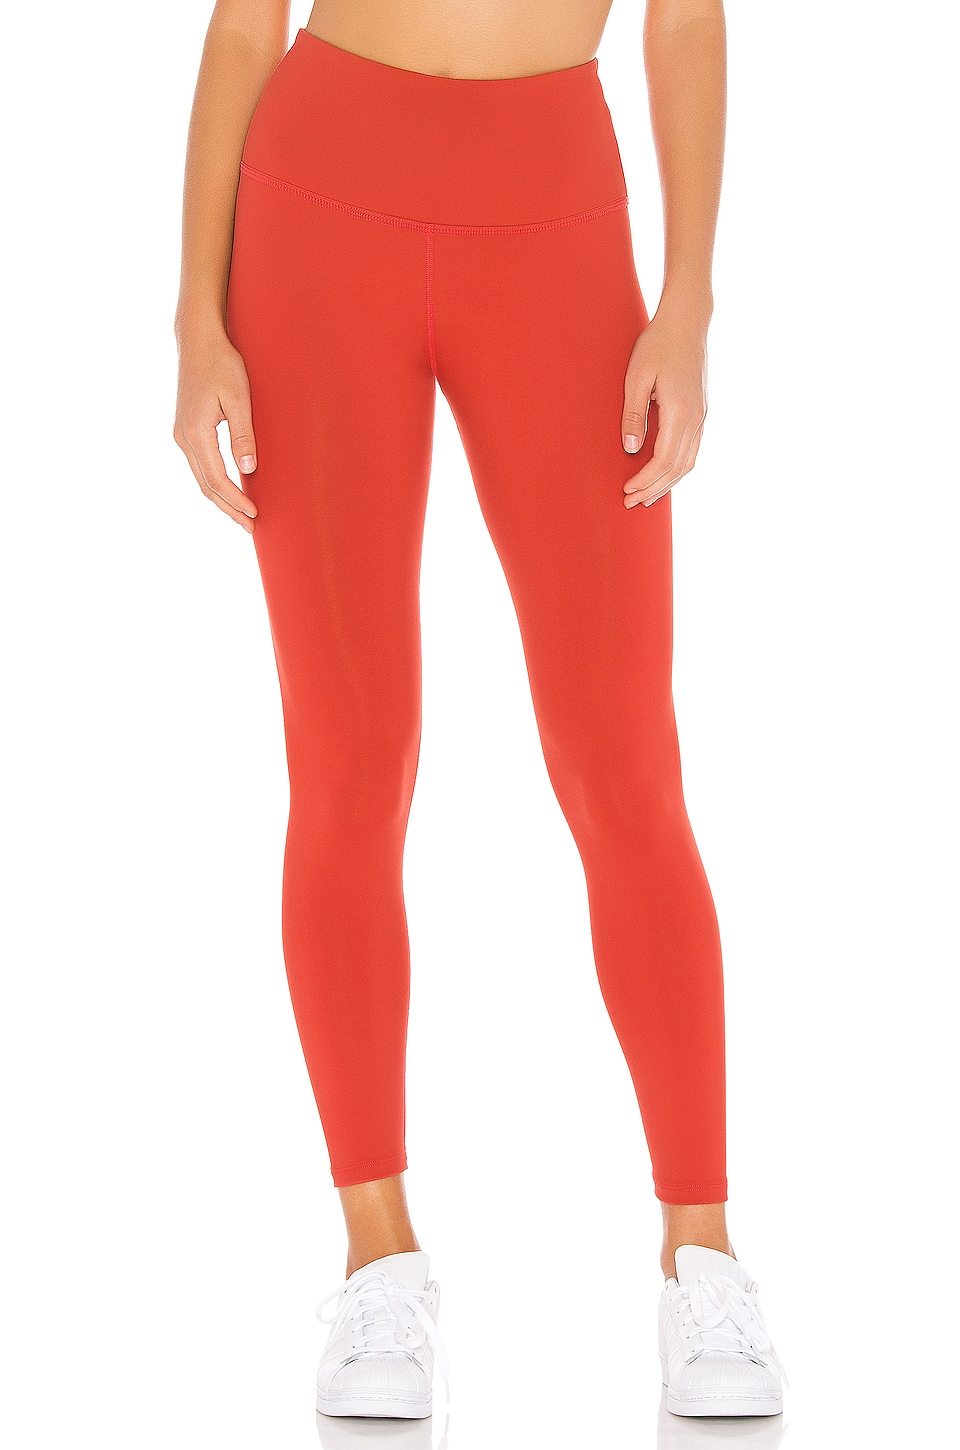 Beyond Yoga Sportflex High Waisted Midi Legging en Scarlet Sun